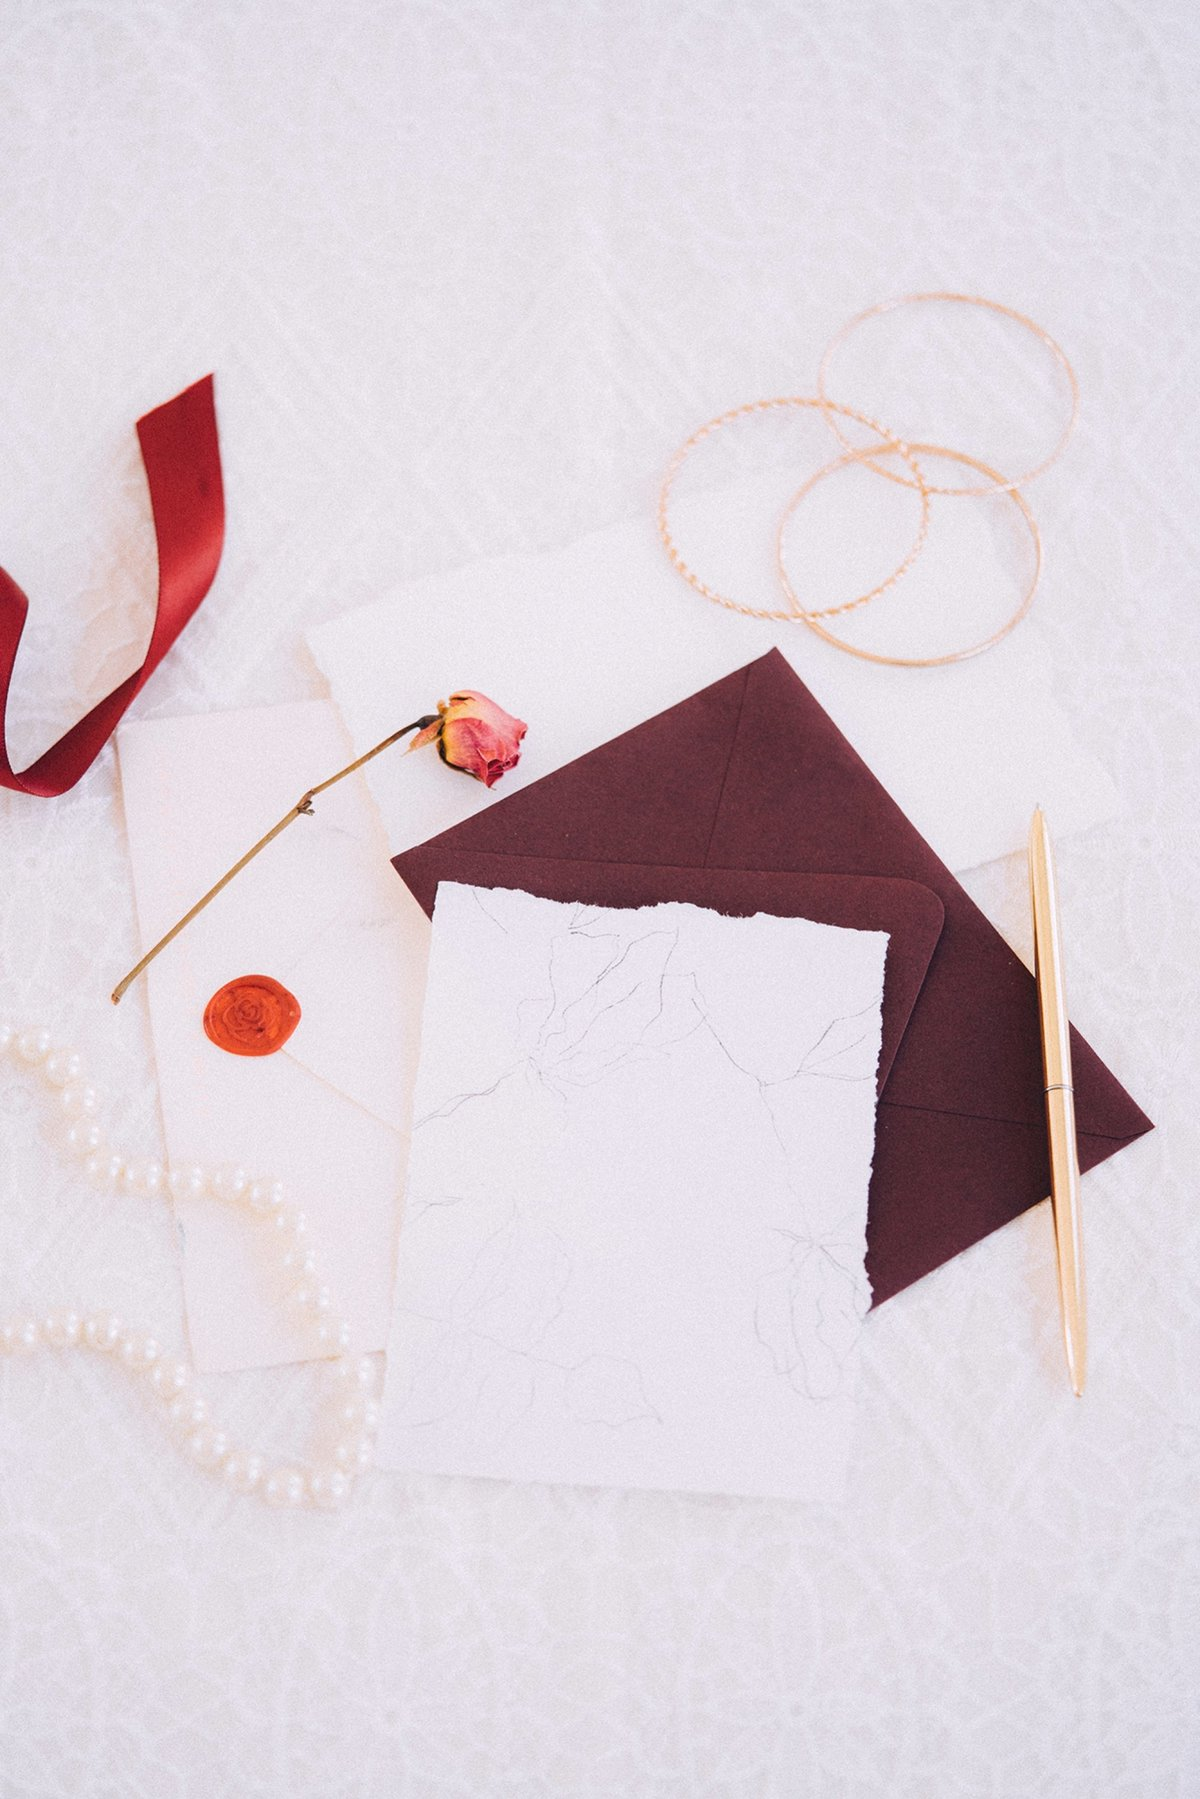 styled-flatlay-photography_0124